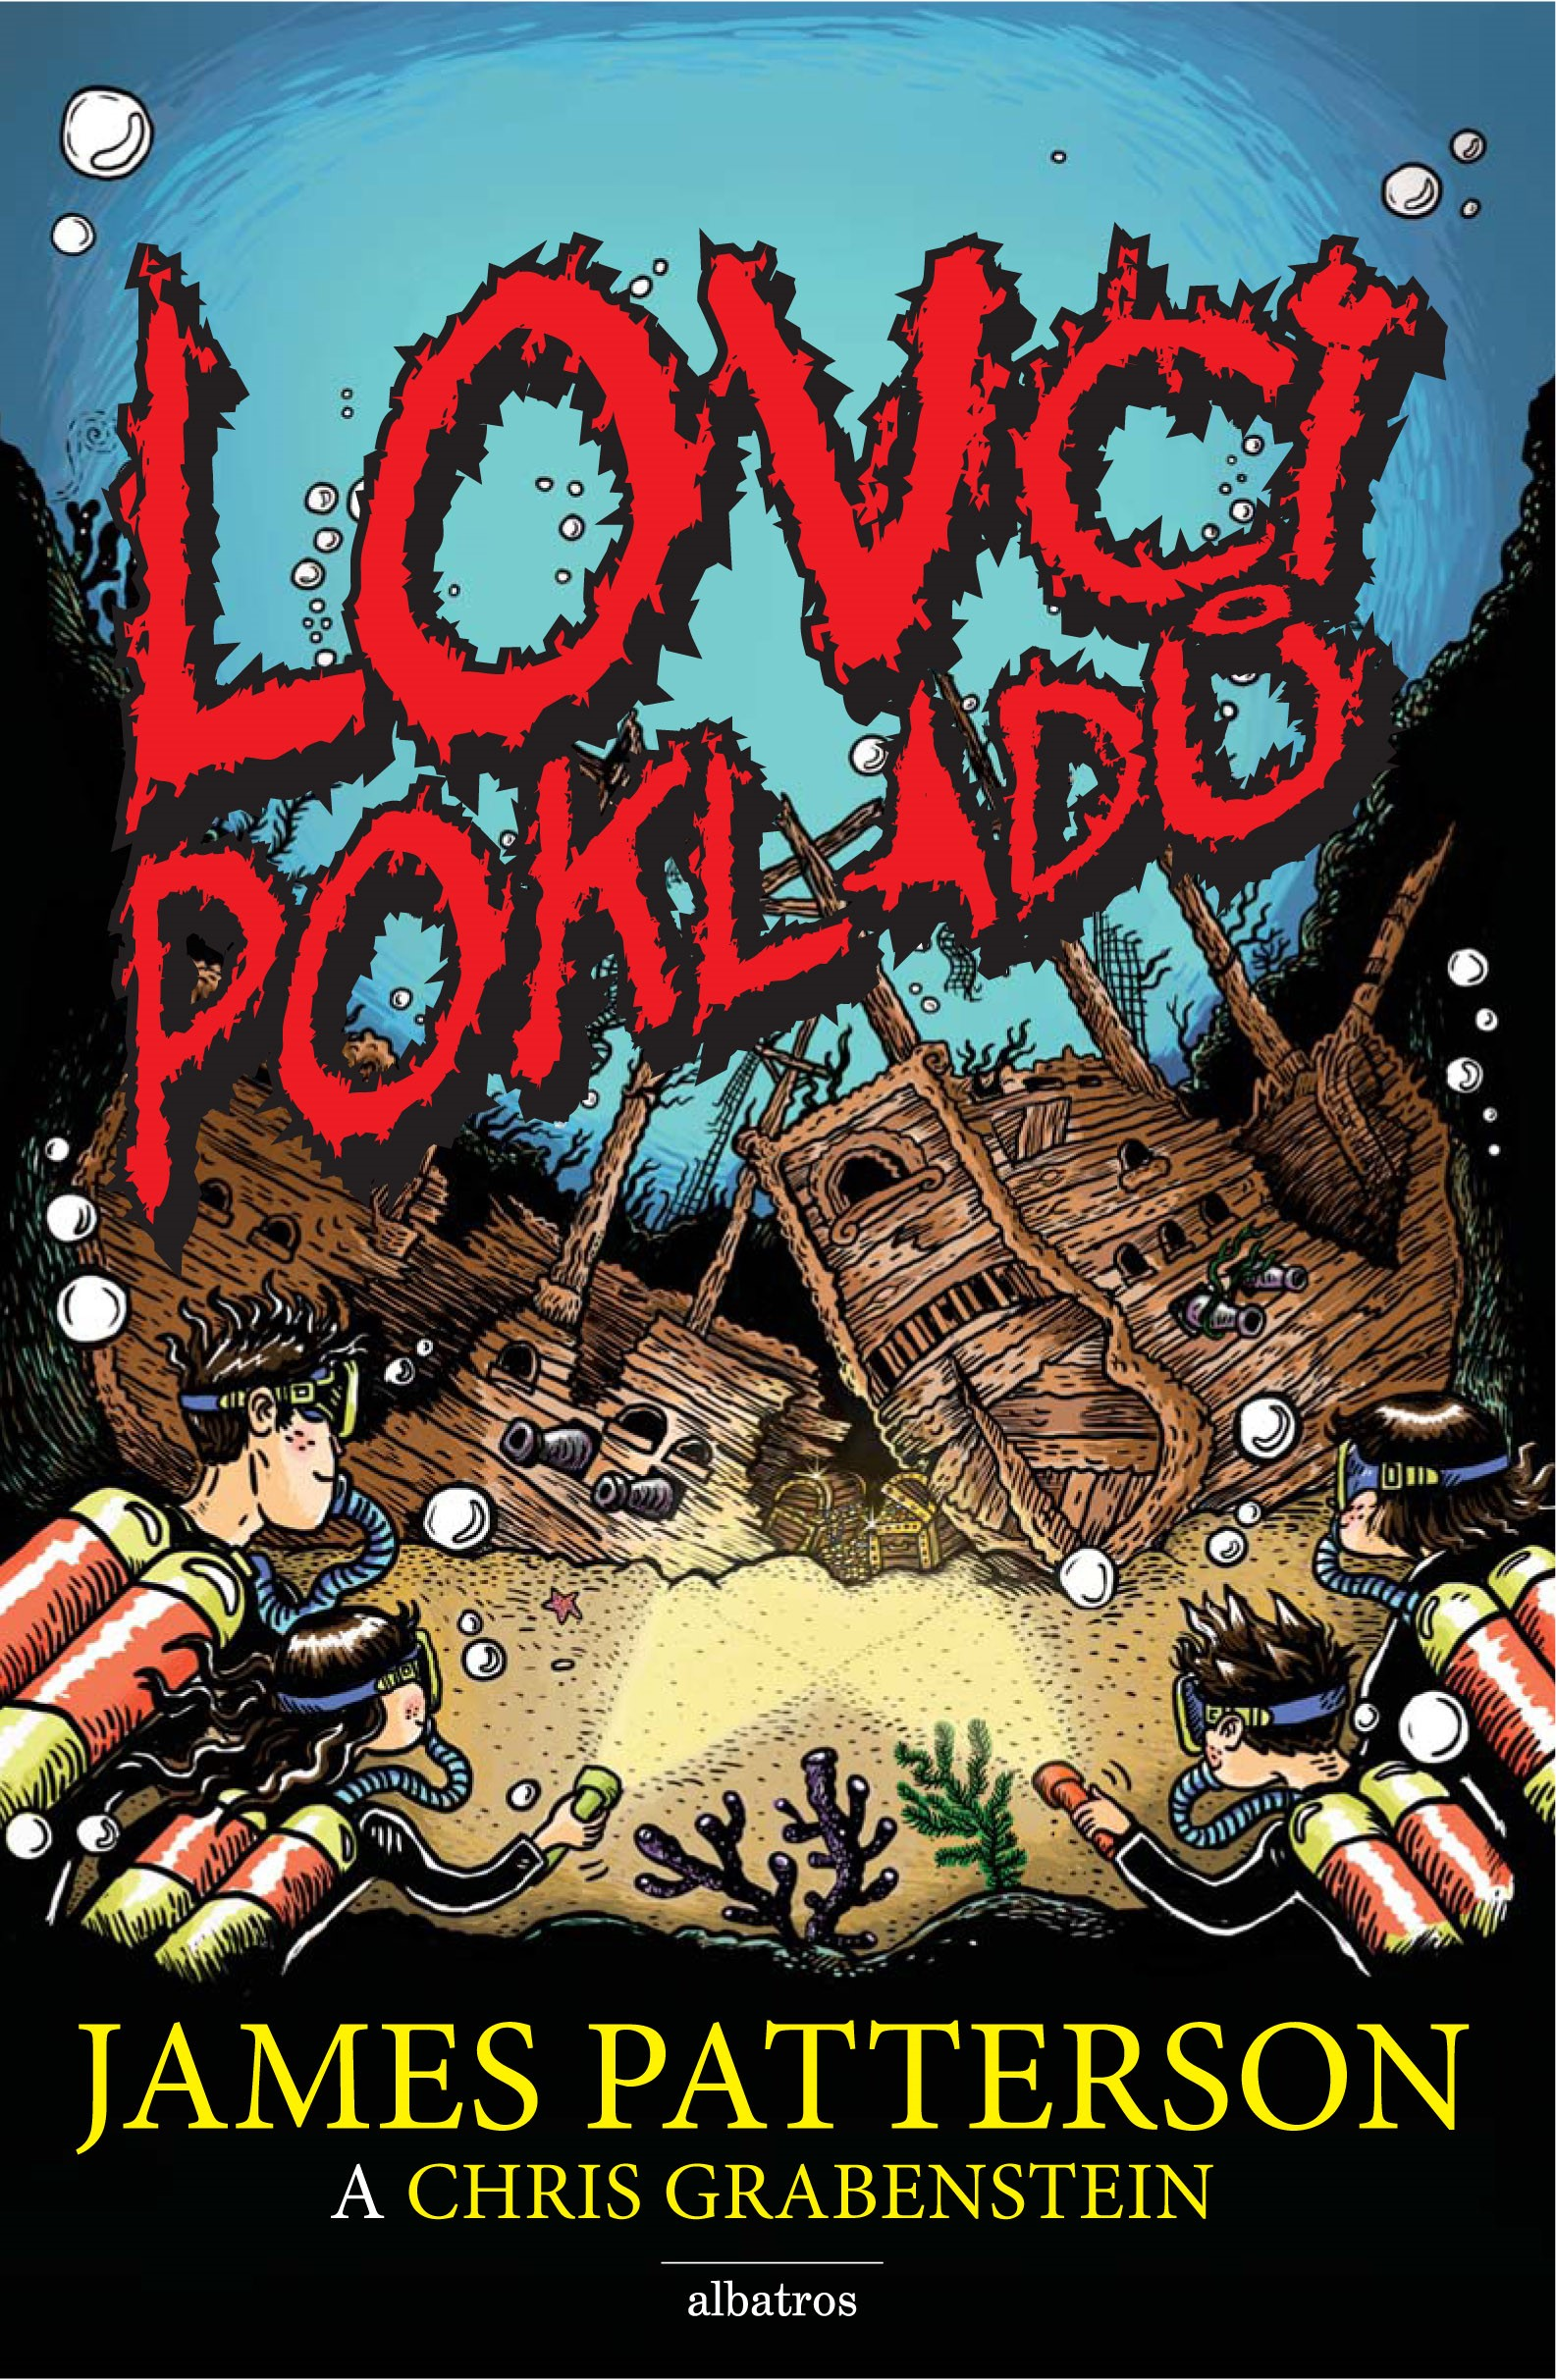 Lovci pokladů 1 | Chris Grabenstein, James Patterson